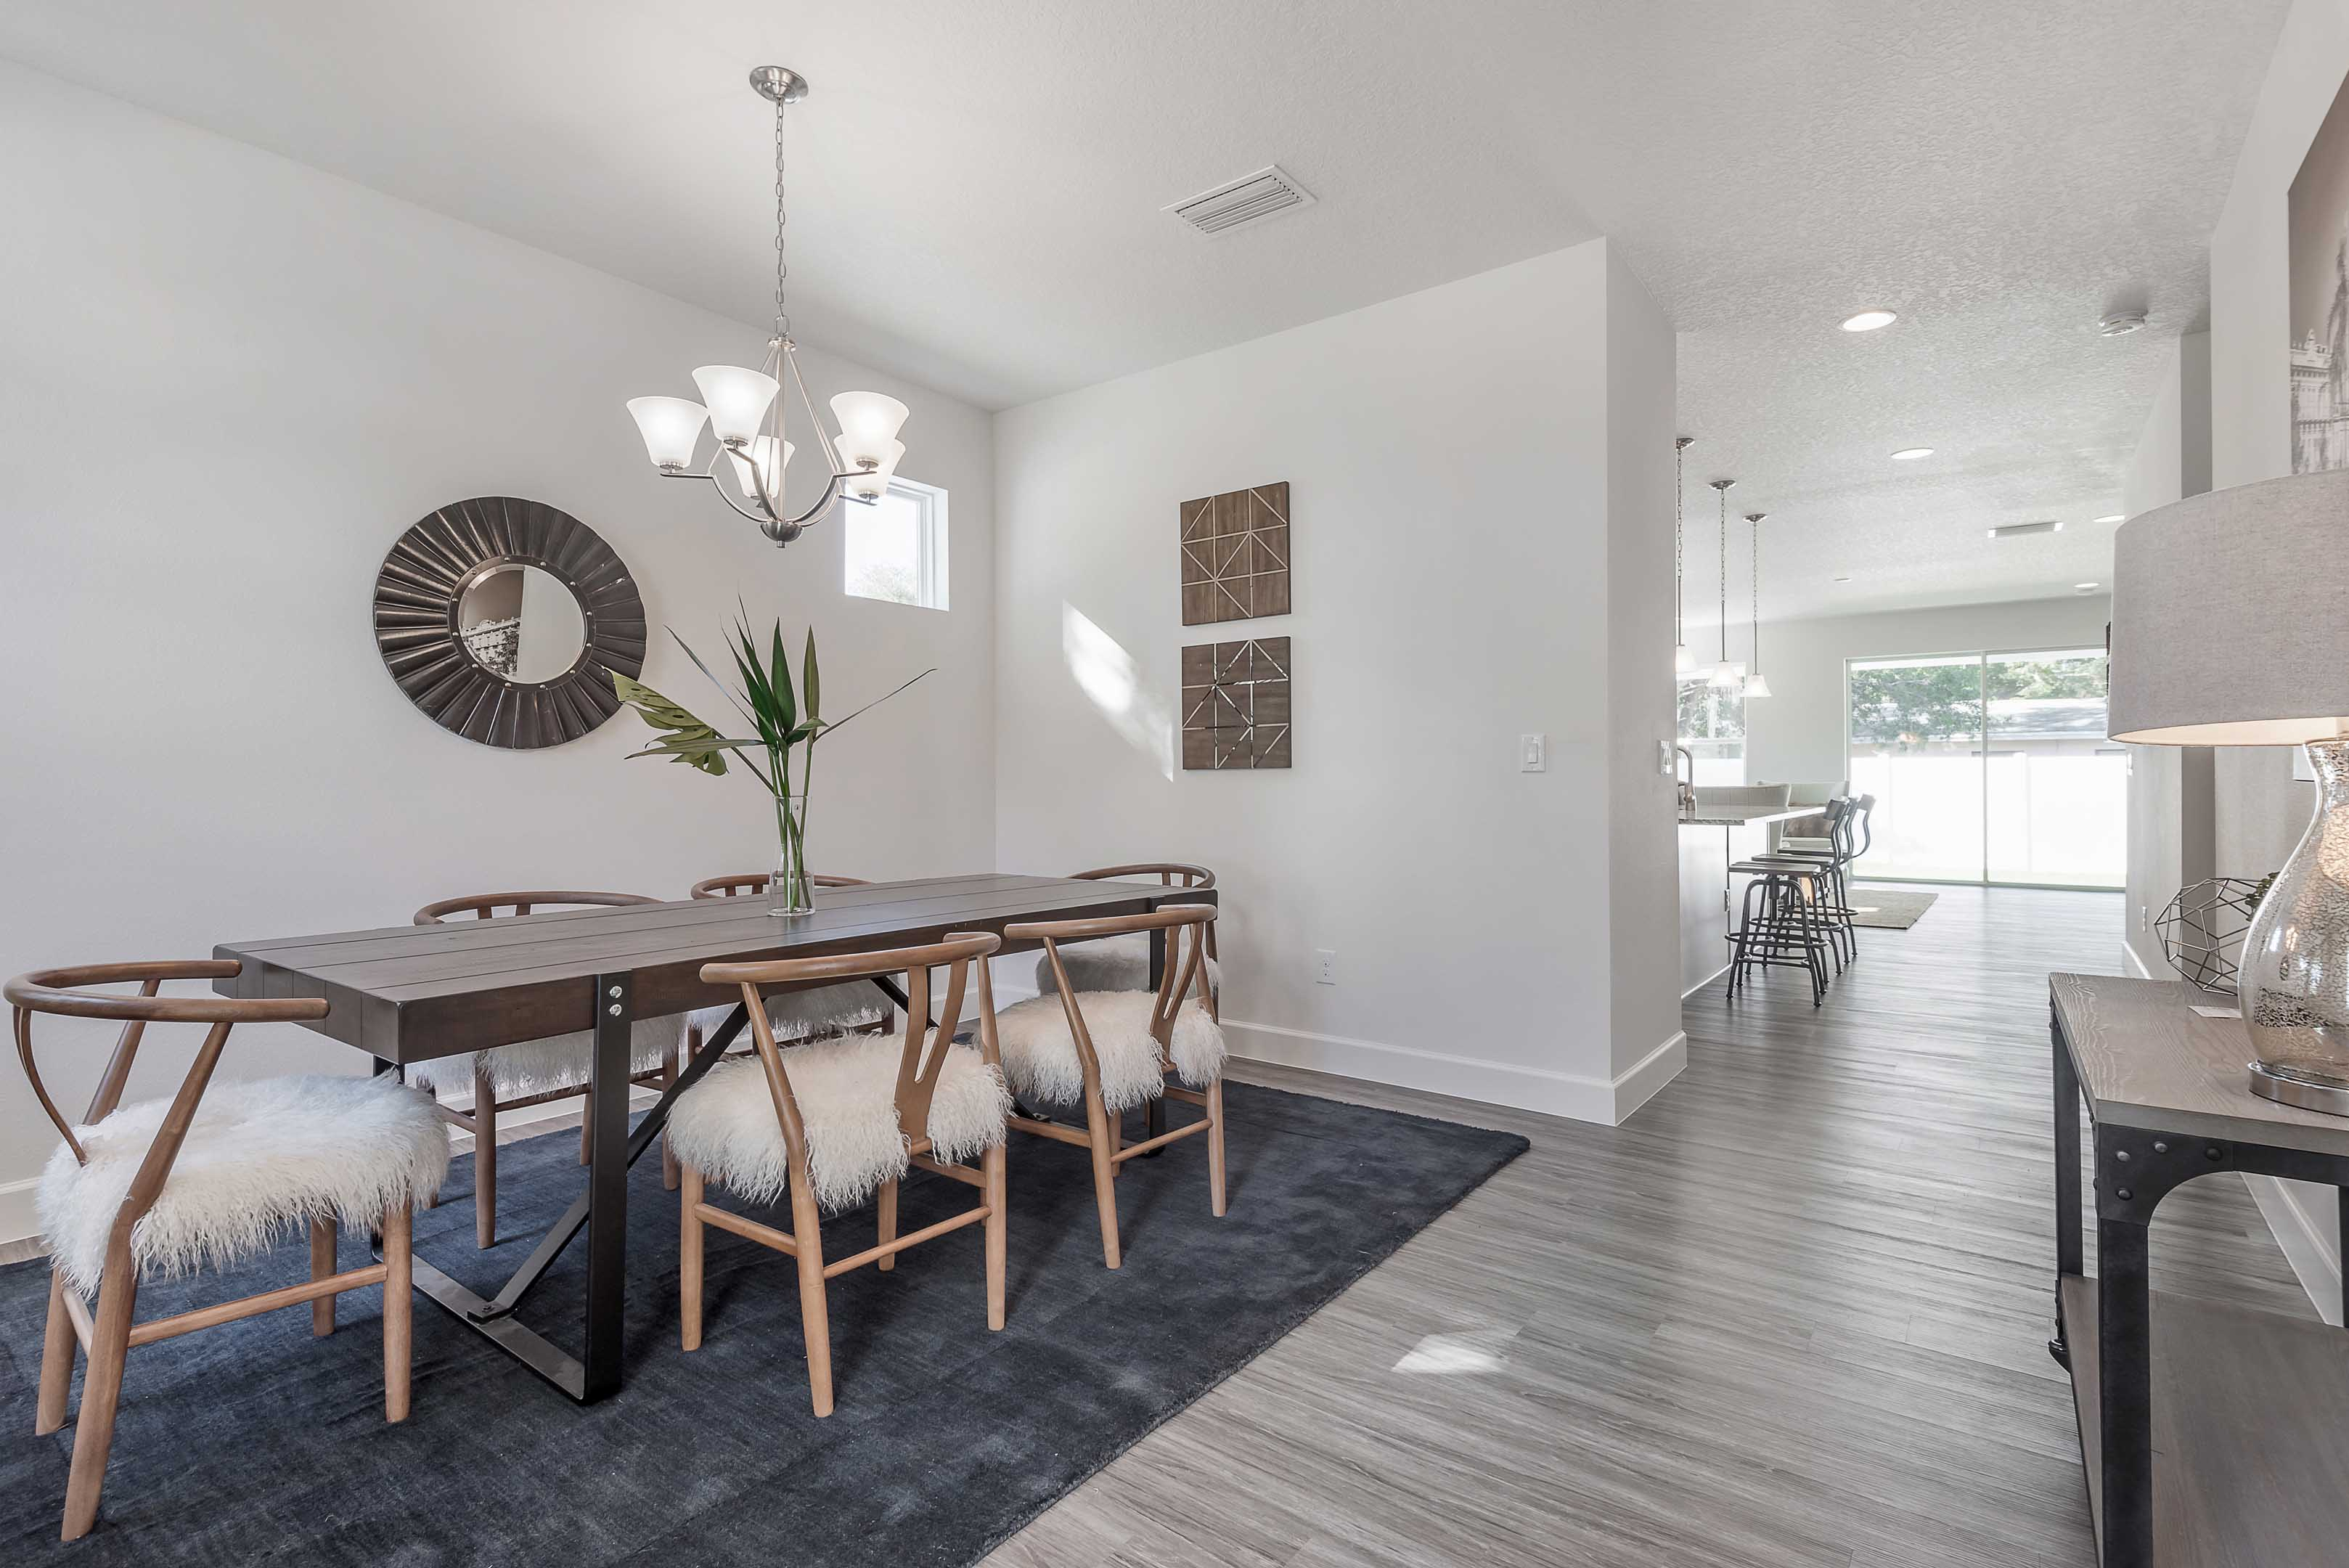 Trendy Classic Model Home With Hints Of Industrial